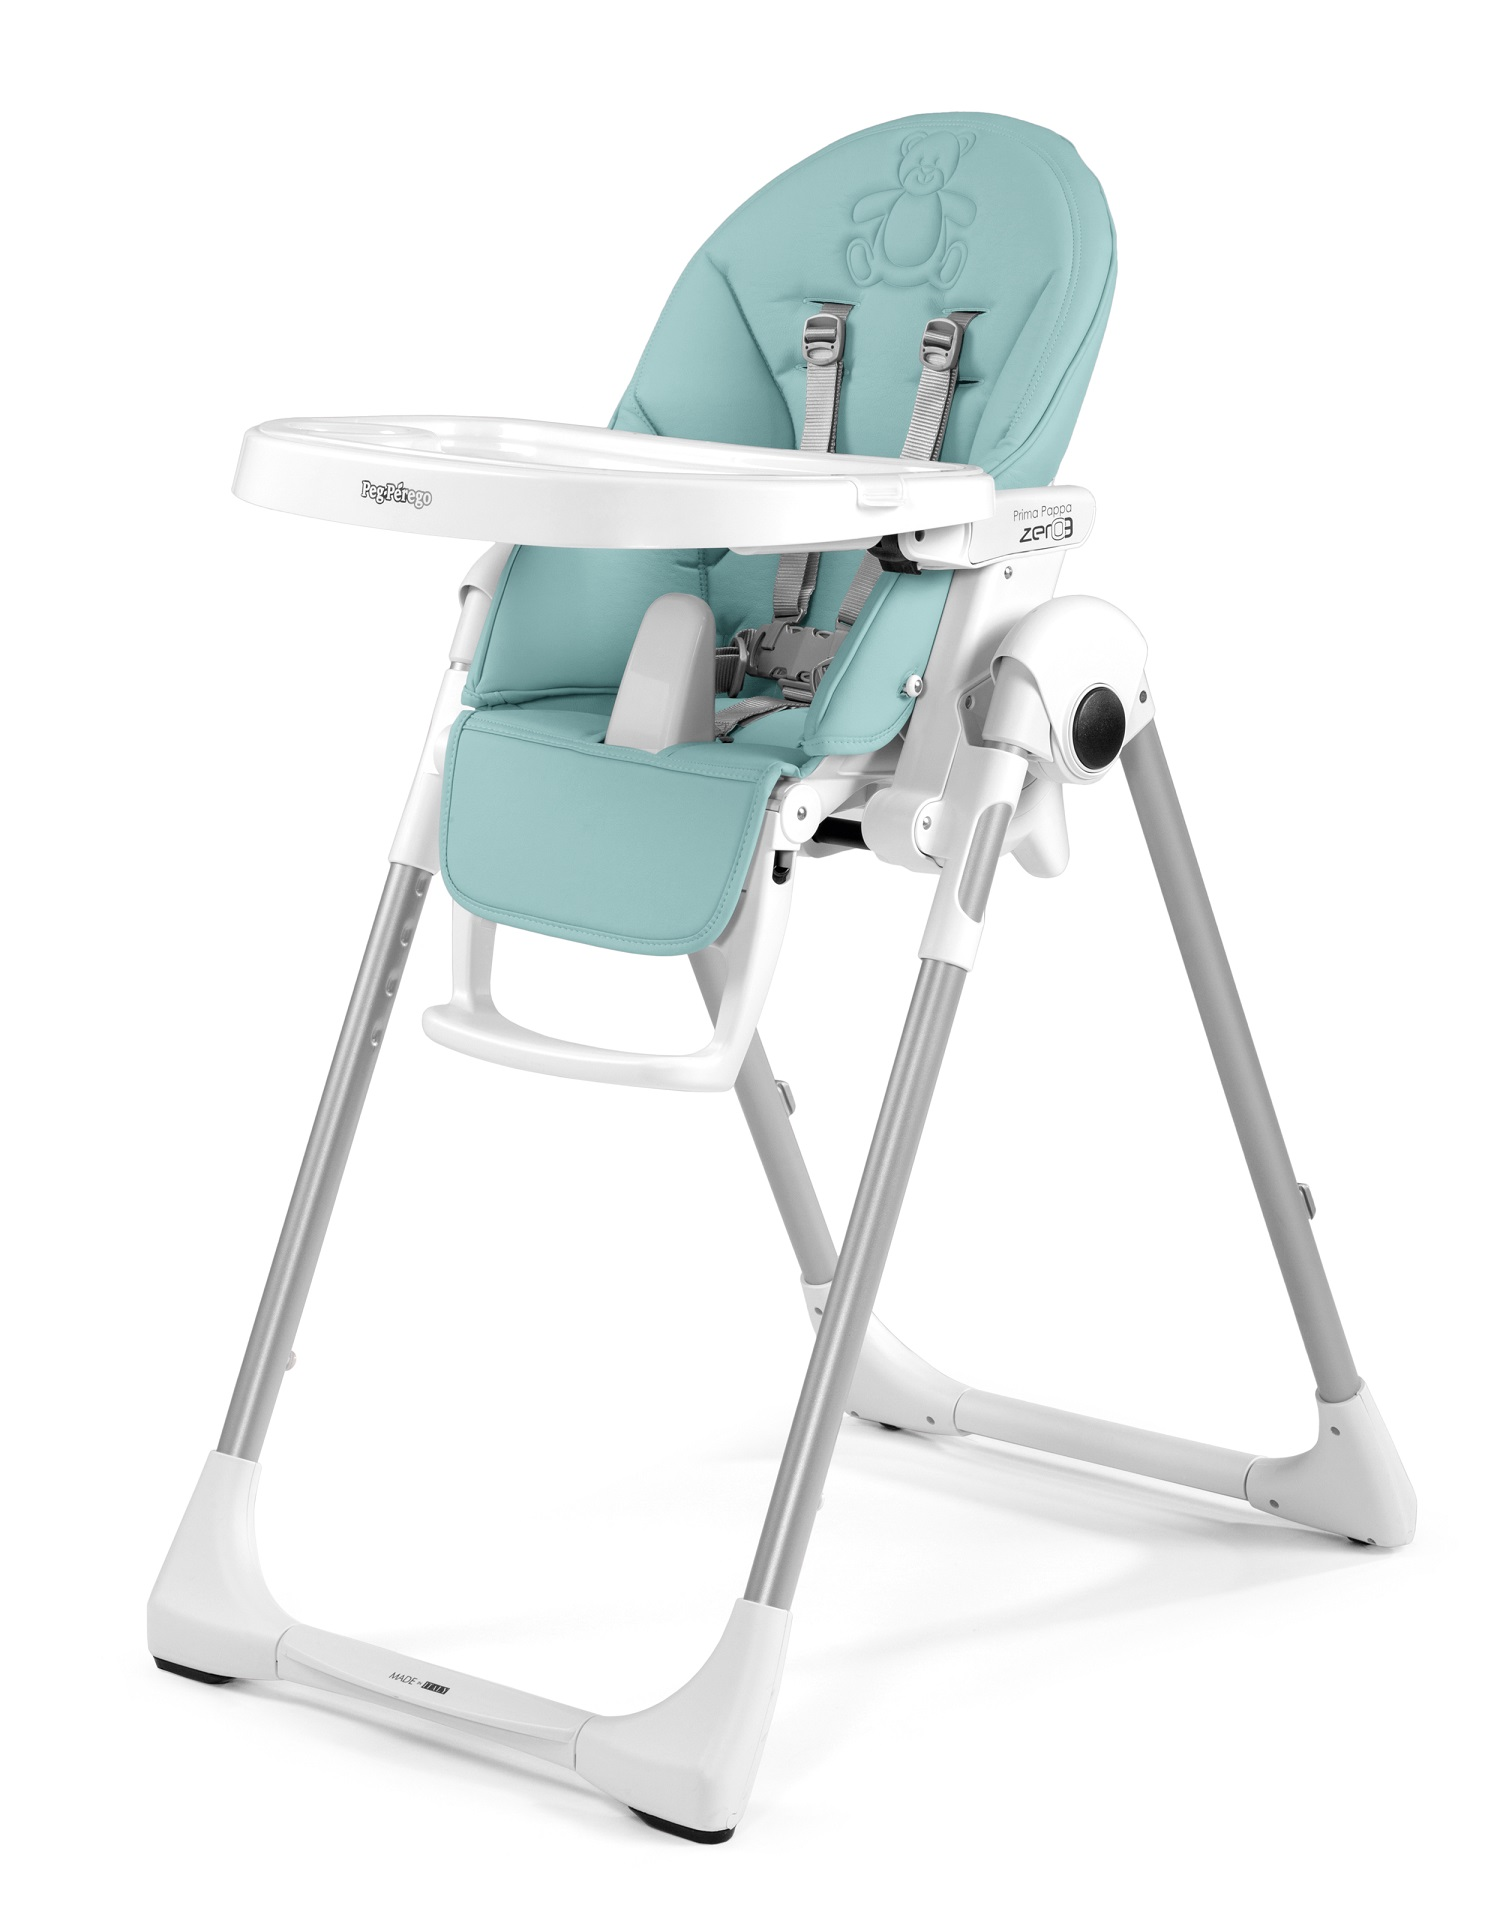 Peg-Perego Highchair Prima Pappa Follow Me Bear Azul 2018 - large image 1 ...  sc 1 st  Baby products online store - worldwide shipping & Peg-Perego Highchair Prima Pappa Follow Me 2018 Bear Azul - Buy at ...